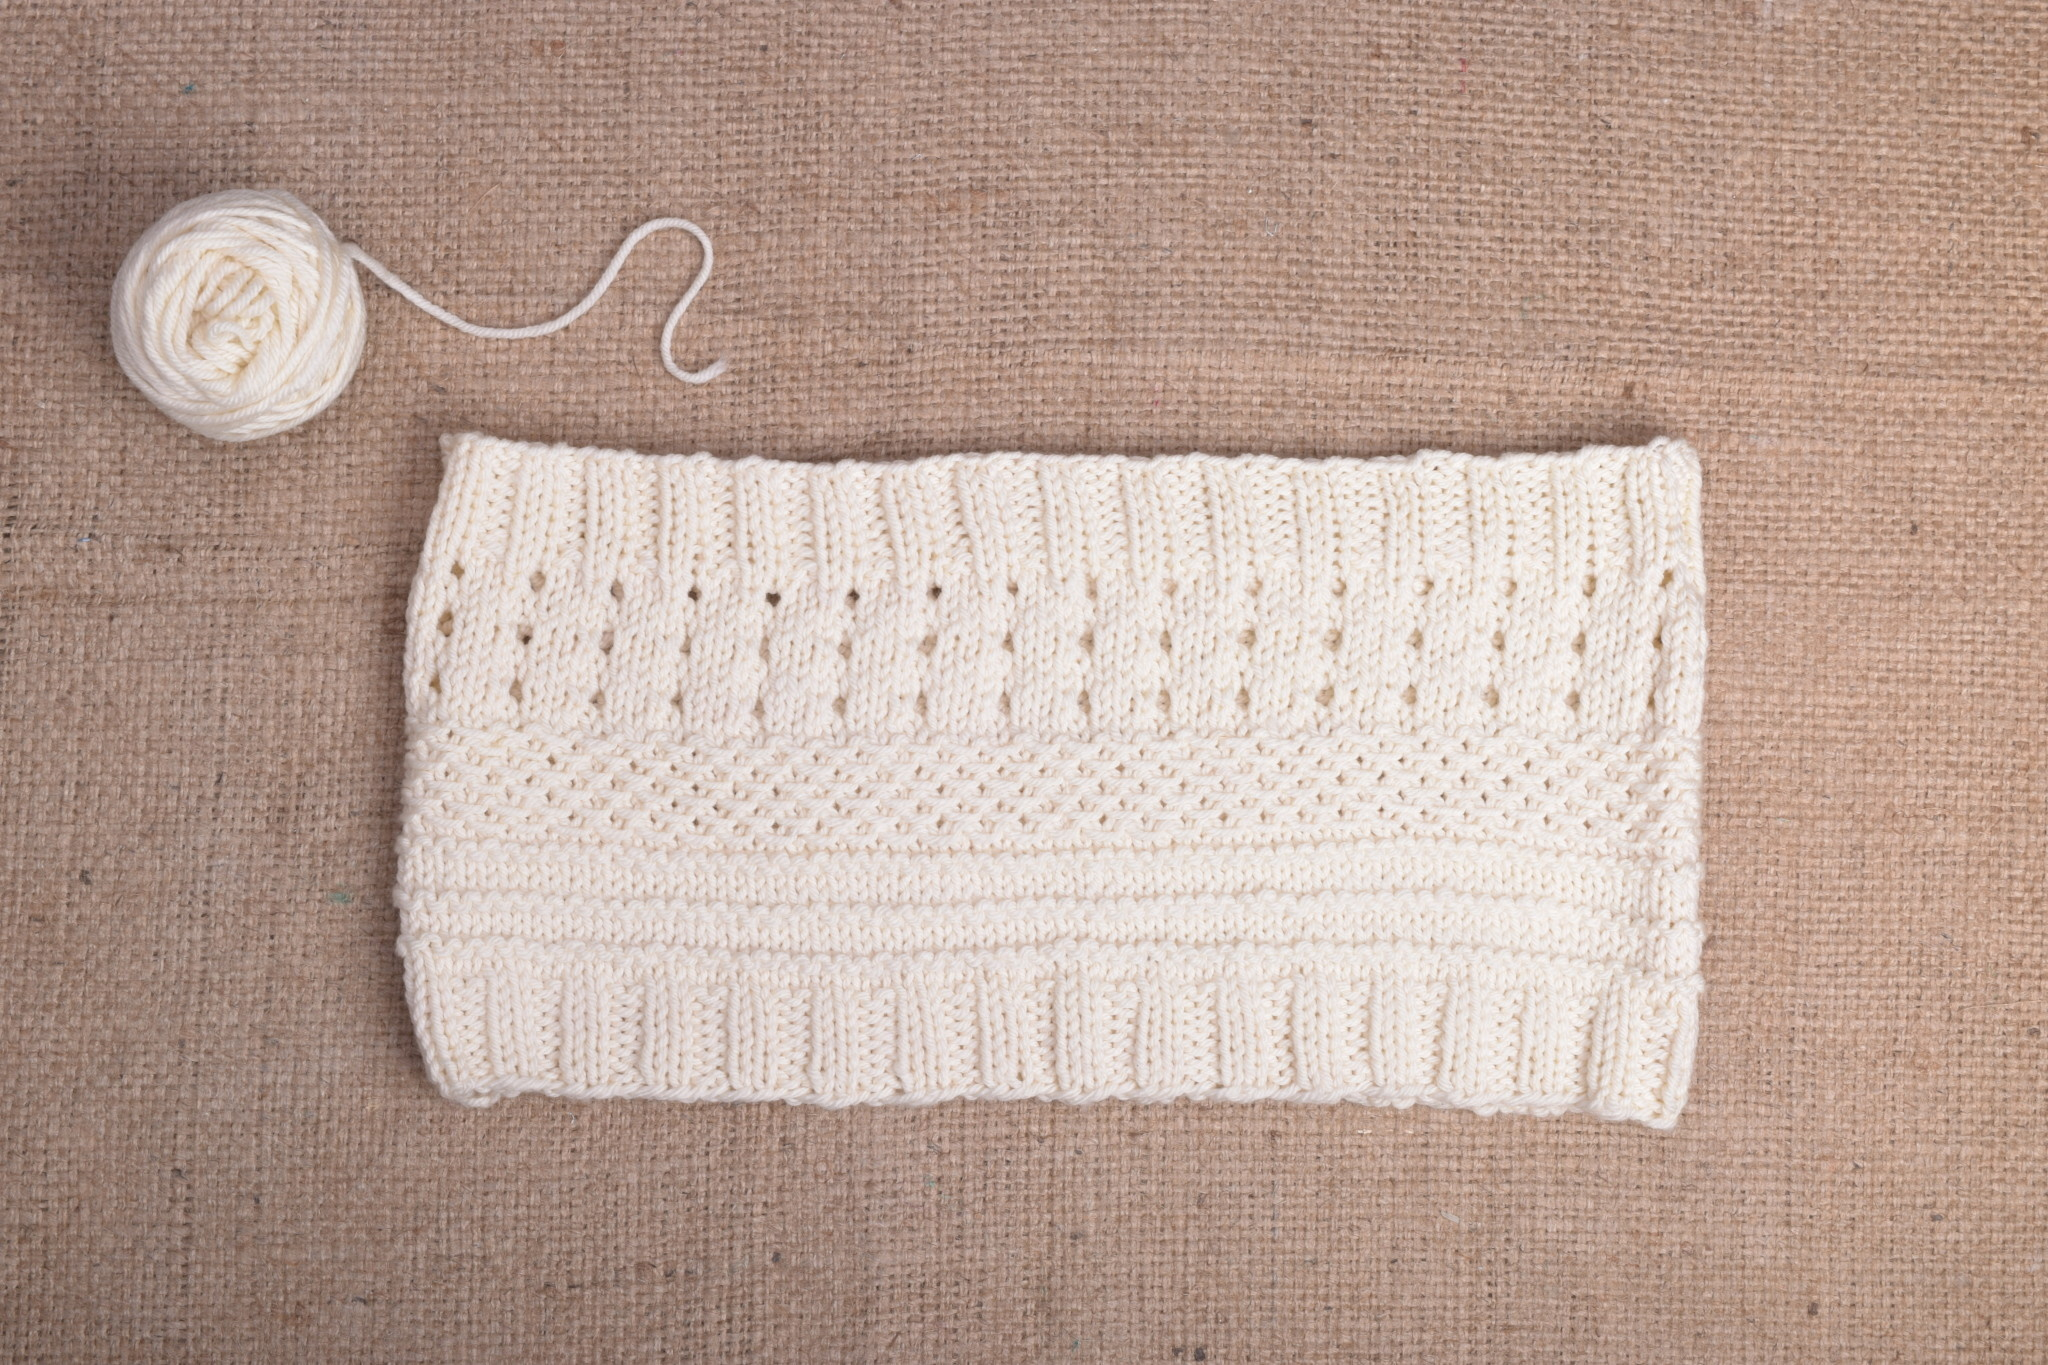 Knitting 101: Learn to Knit; Tuesday, May 7, 14, 21, 28;  6:00-8:00PM